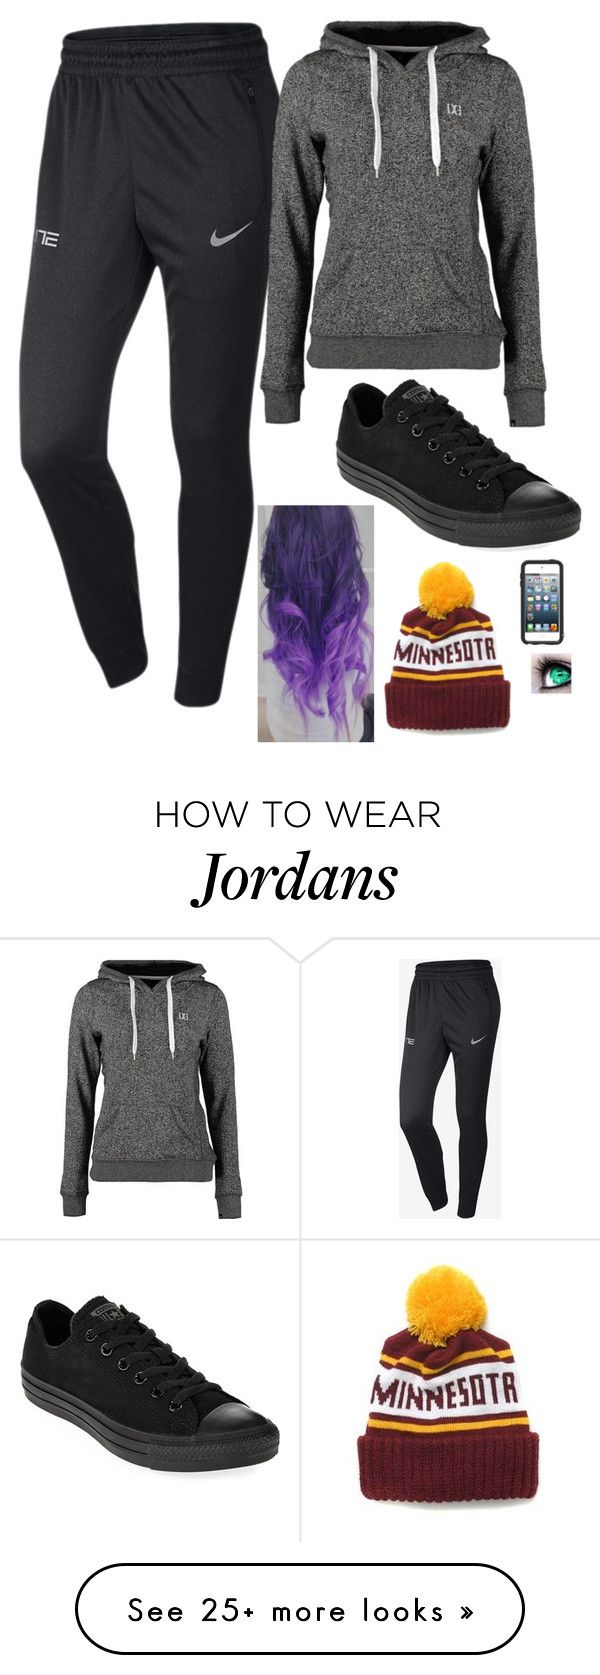 """Untitled #774"" by erika-demass on Polyvore featuring mode, NIKE, Converse, DC Shoes en OtterBox"